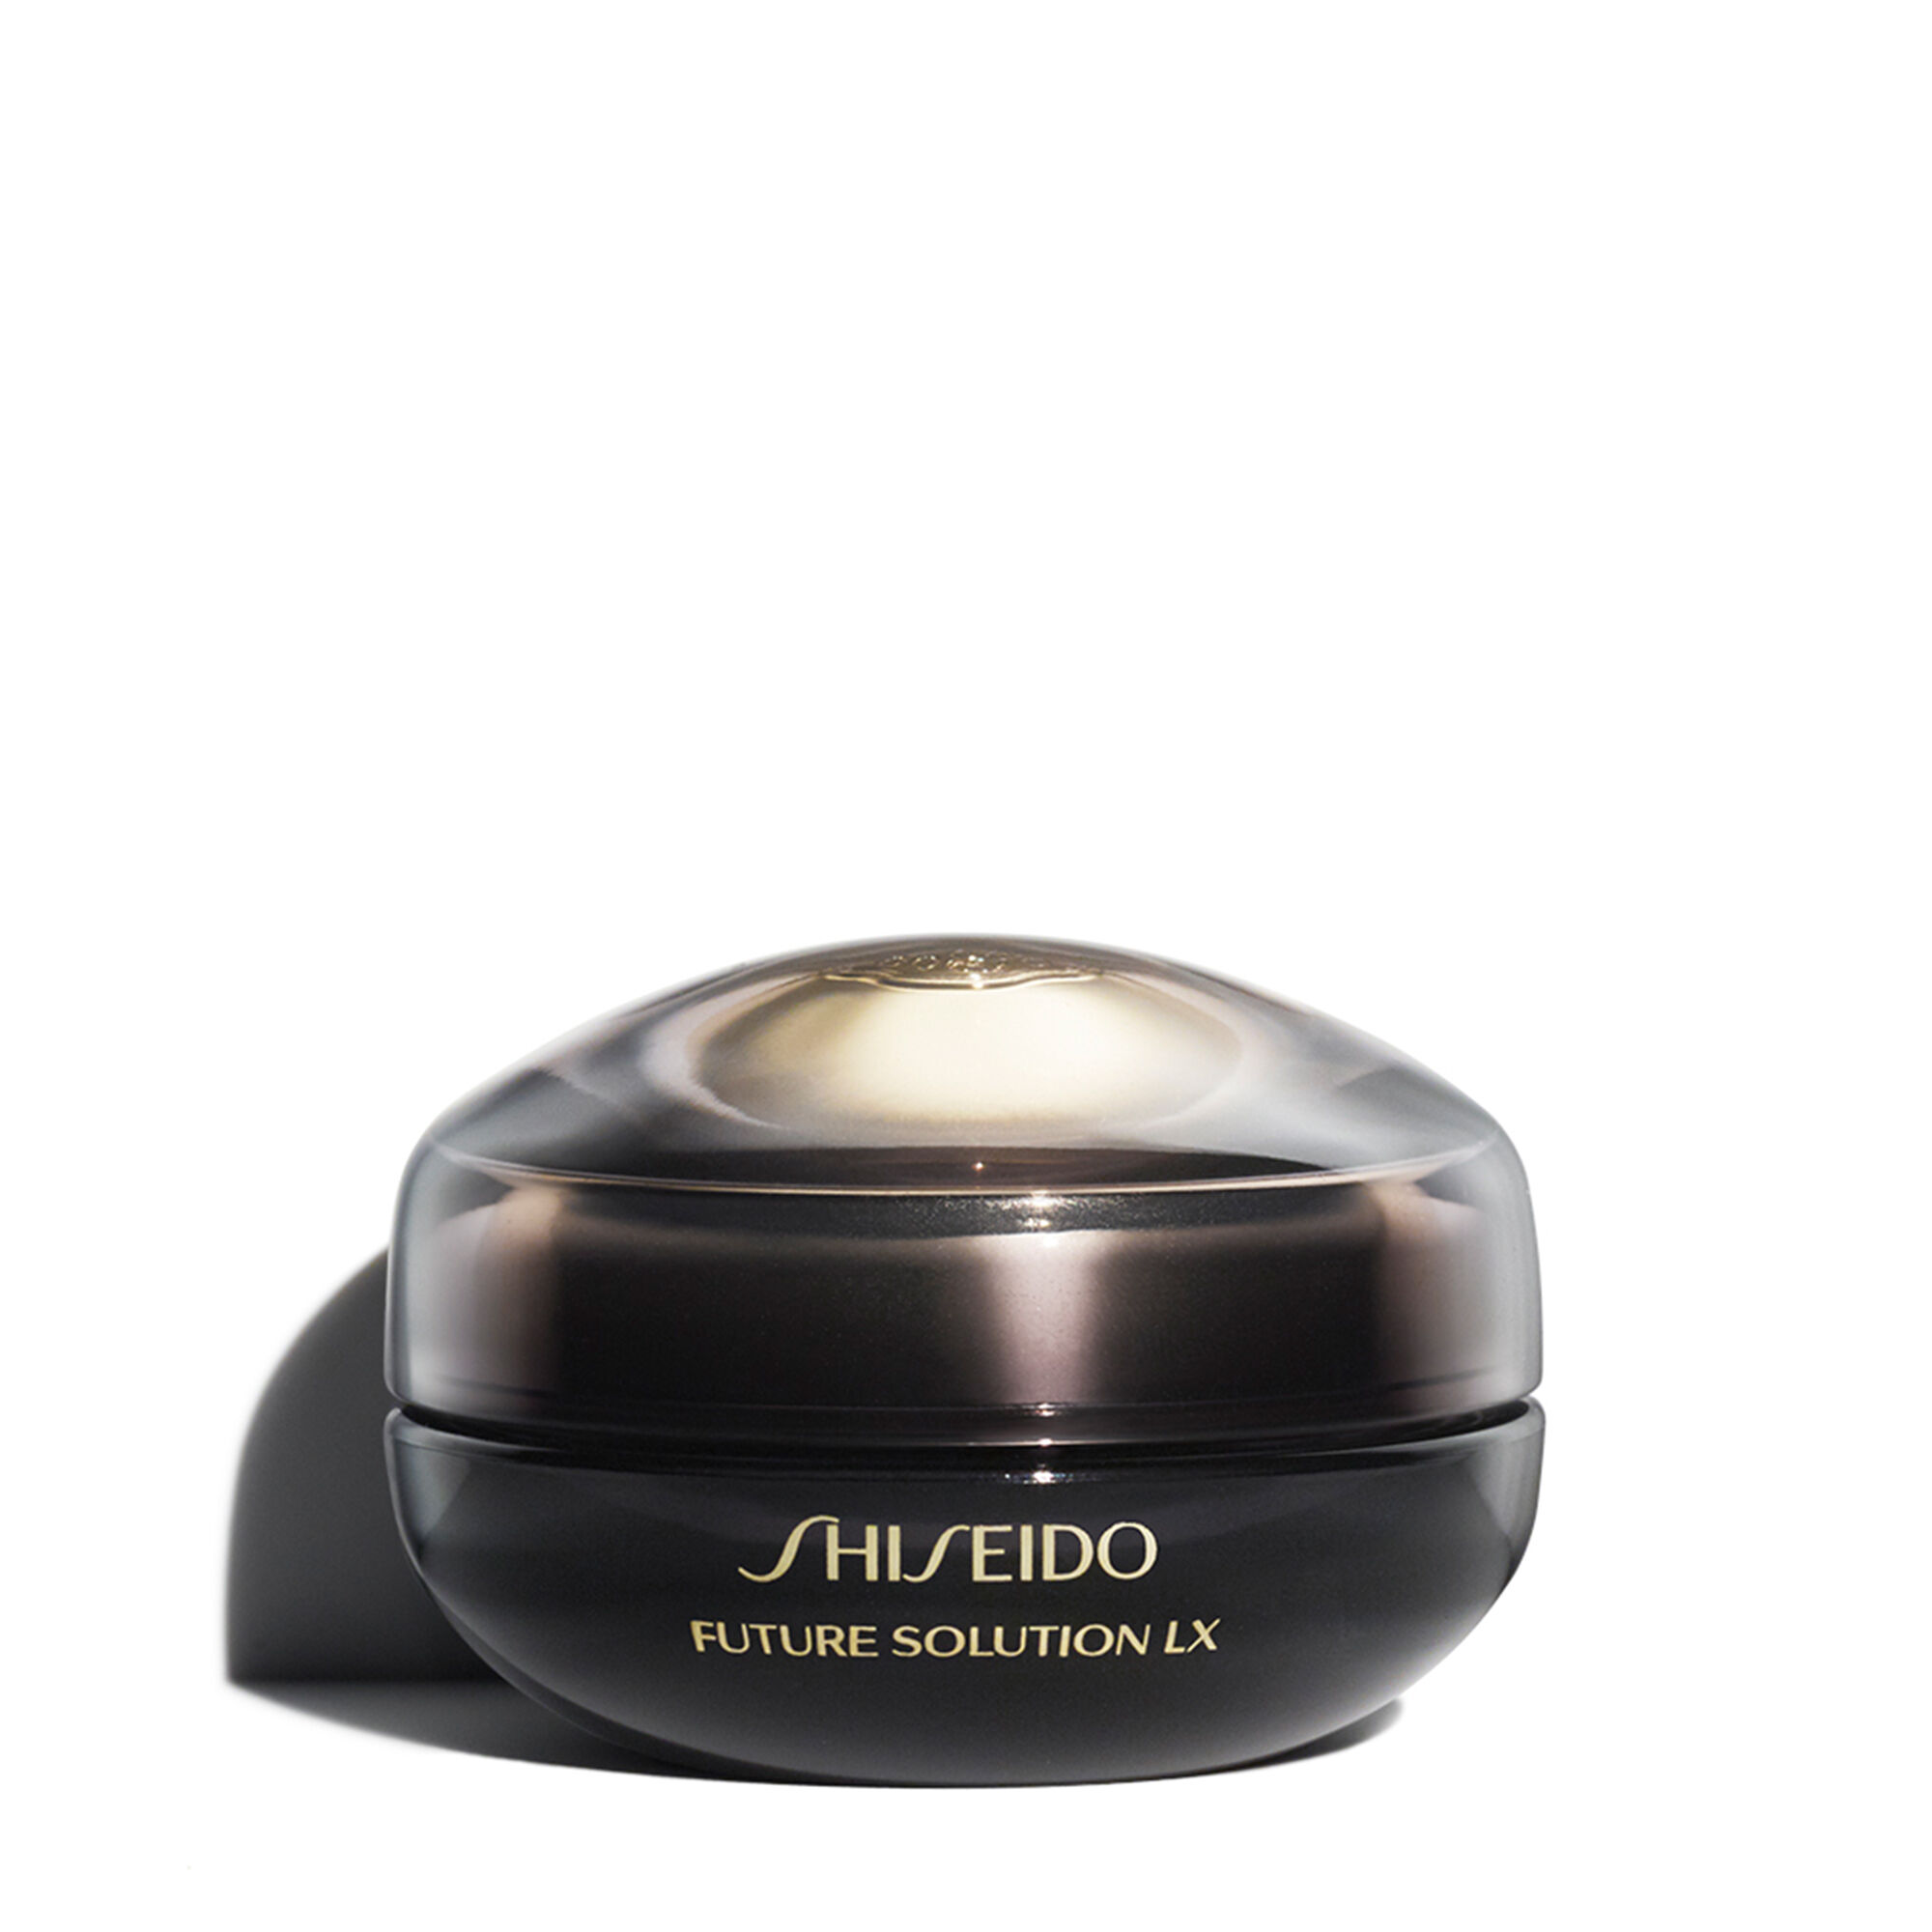 3 Pack - Shiseido Future Solution Lx Eye and Lip Contour Regenerating Cream for Unisex 0.54 oz Sensai Silk 10 Second Awakening Essence Travel Set, 0.10 Oz x 12